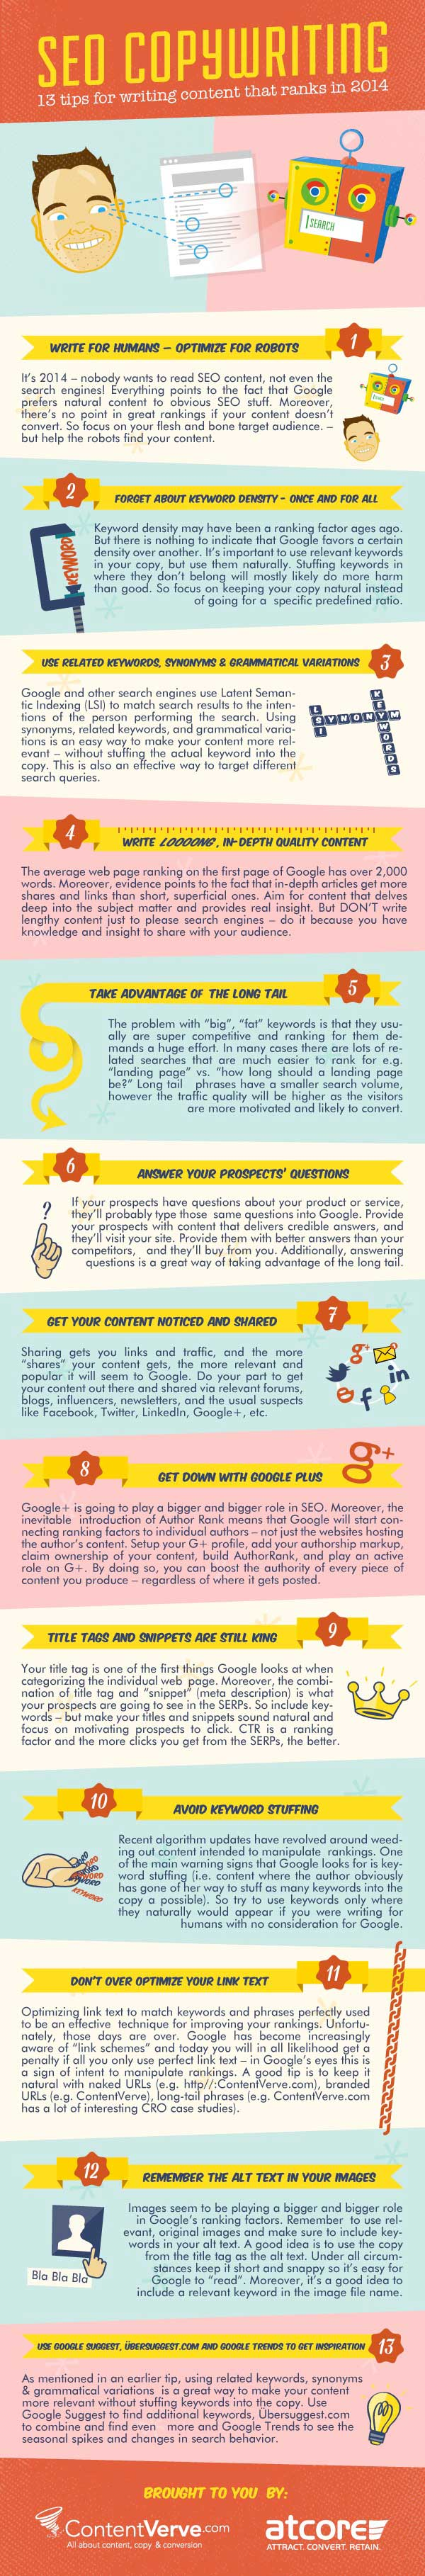 SEO Copywriting Tips - Infographic